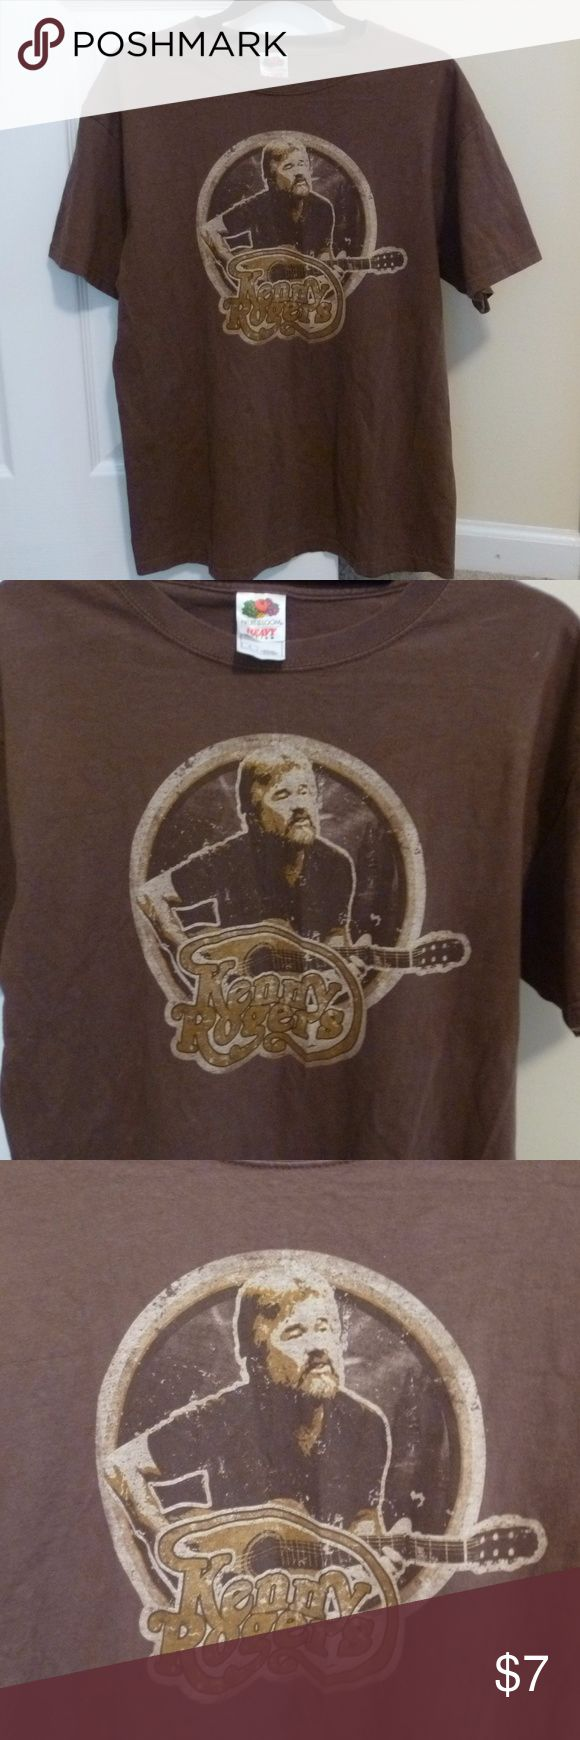 Vintage look Kenny Rogers T-shirt Show your love for classic country music and broasted chicken with this vintage style Kenny Rogers tee shirt.  Printed on a brown Fruit of the Loom heavy tee, it is in great condition, with the design showing some (intentional) distressing.  Men's size L. Kenny Rogers Shirts Tees - Short Sleeve